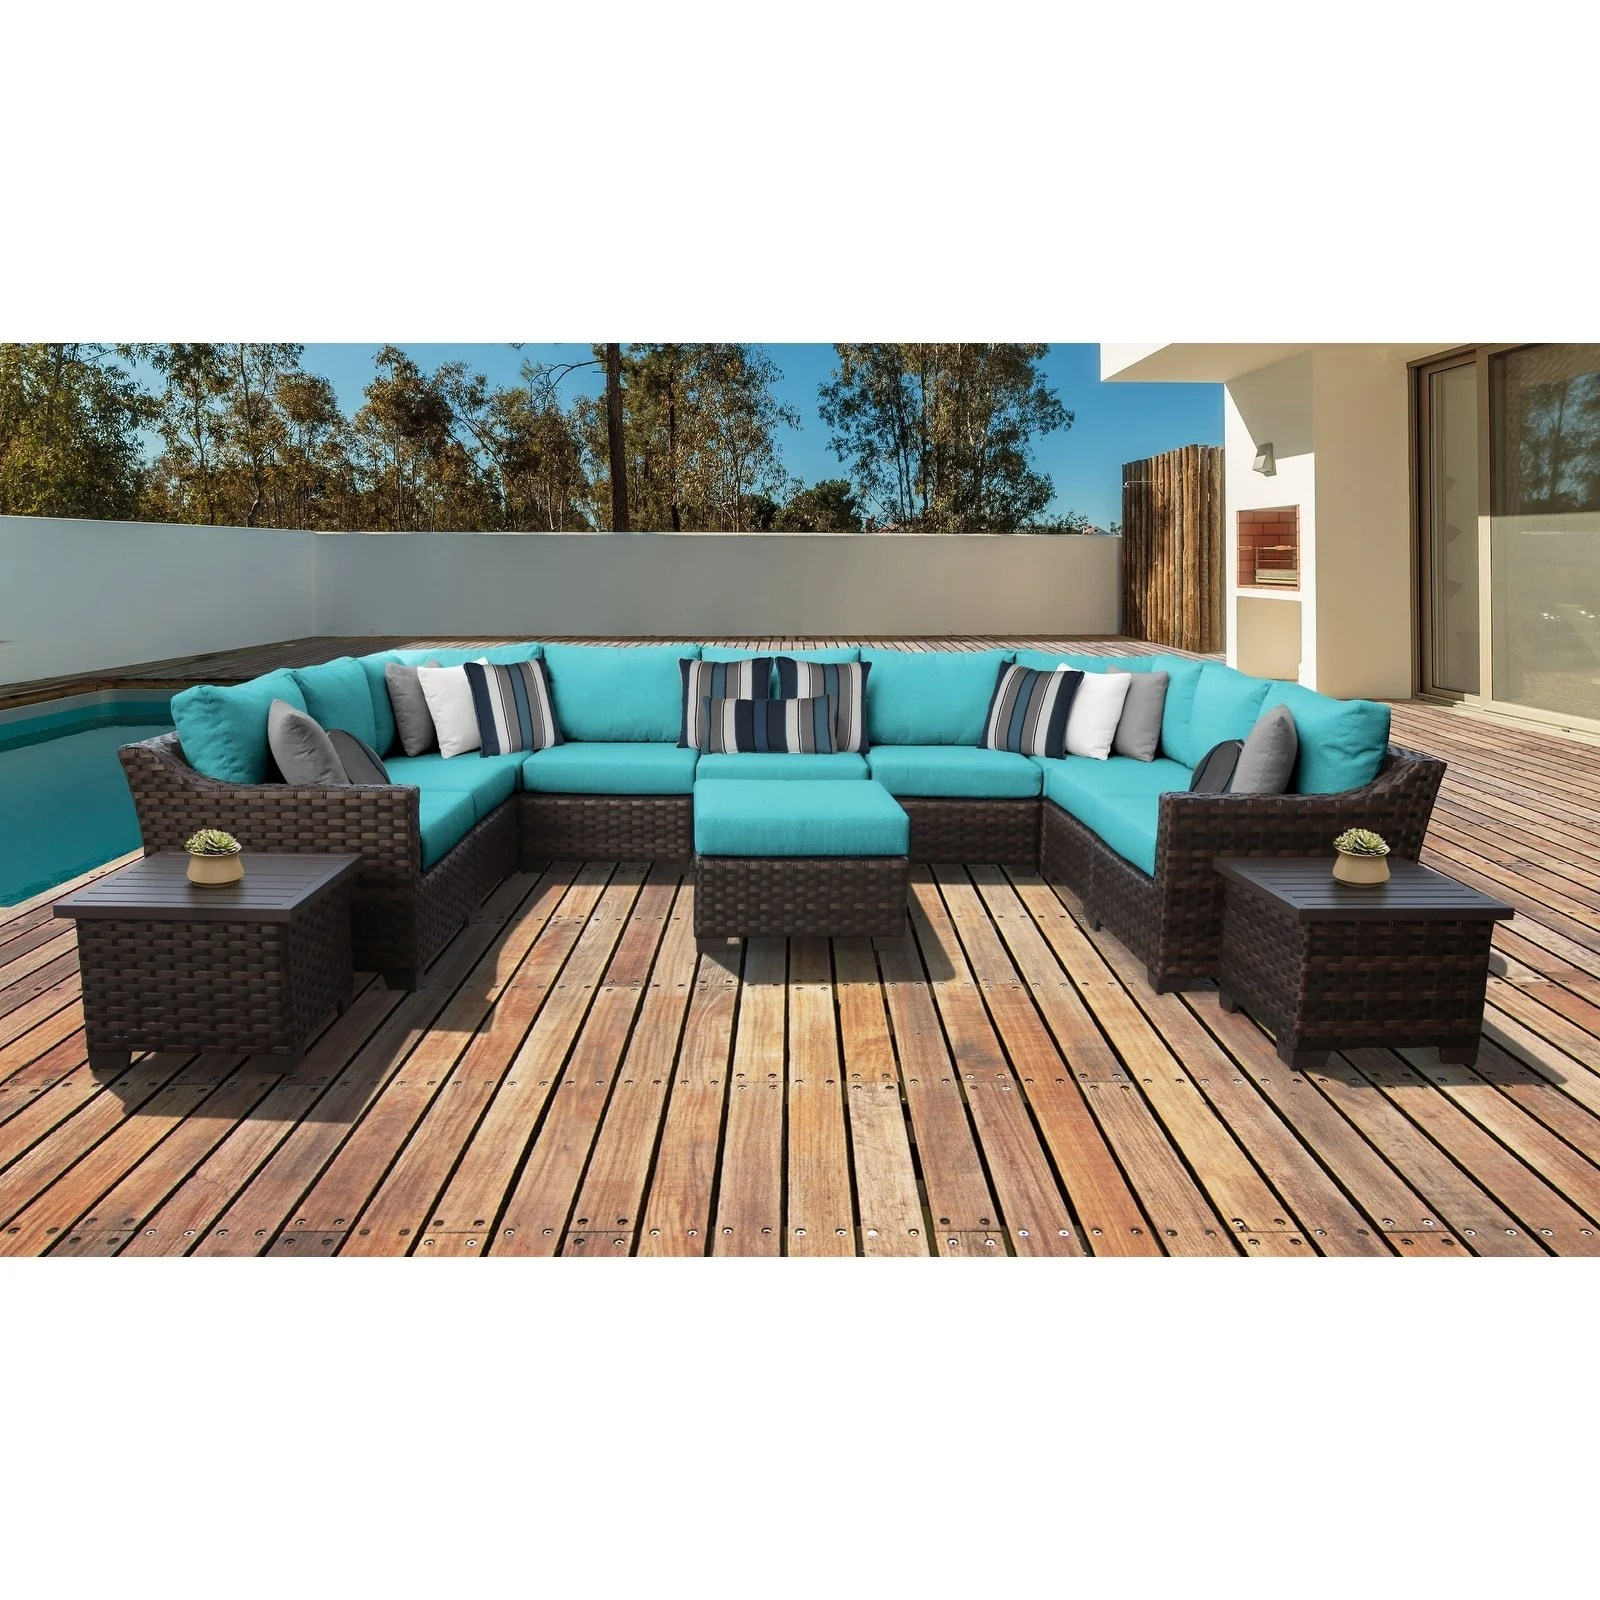 Outdoor Sofas Chairs & Sectionals Online